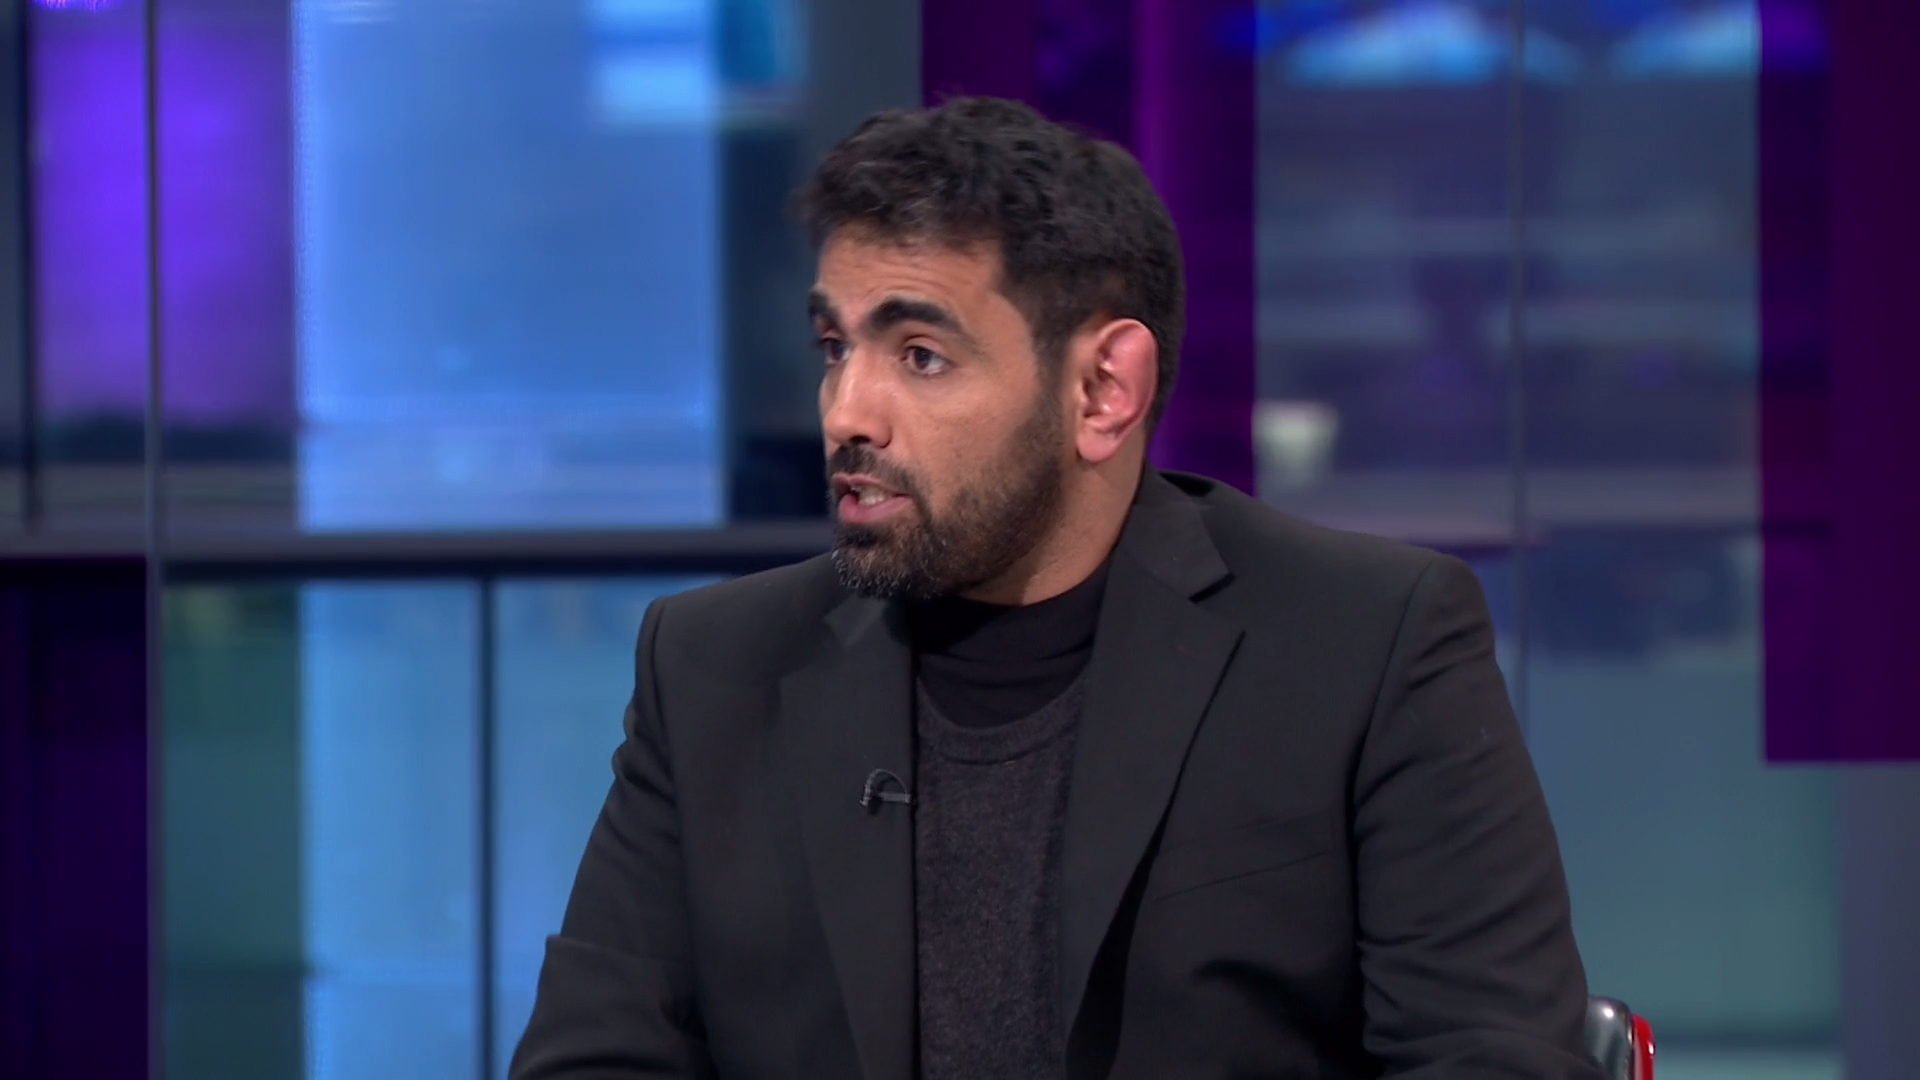 Activist Ghanem al-Masarir given permission to sue Saudi Arabia in UK over alleged hack of his phone - channel 4